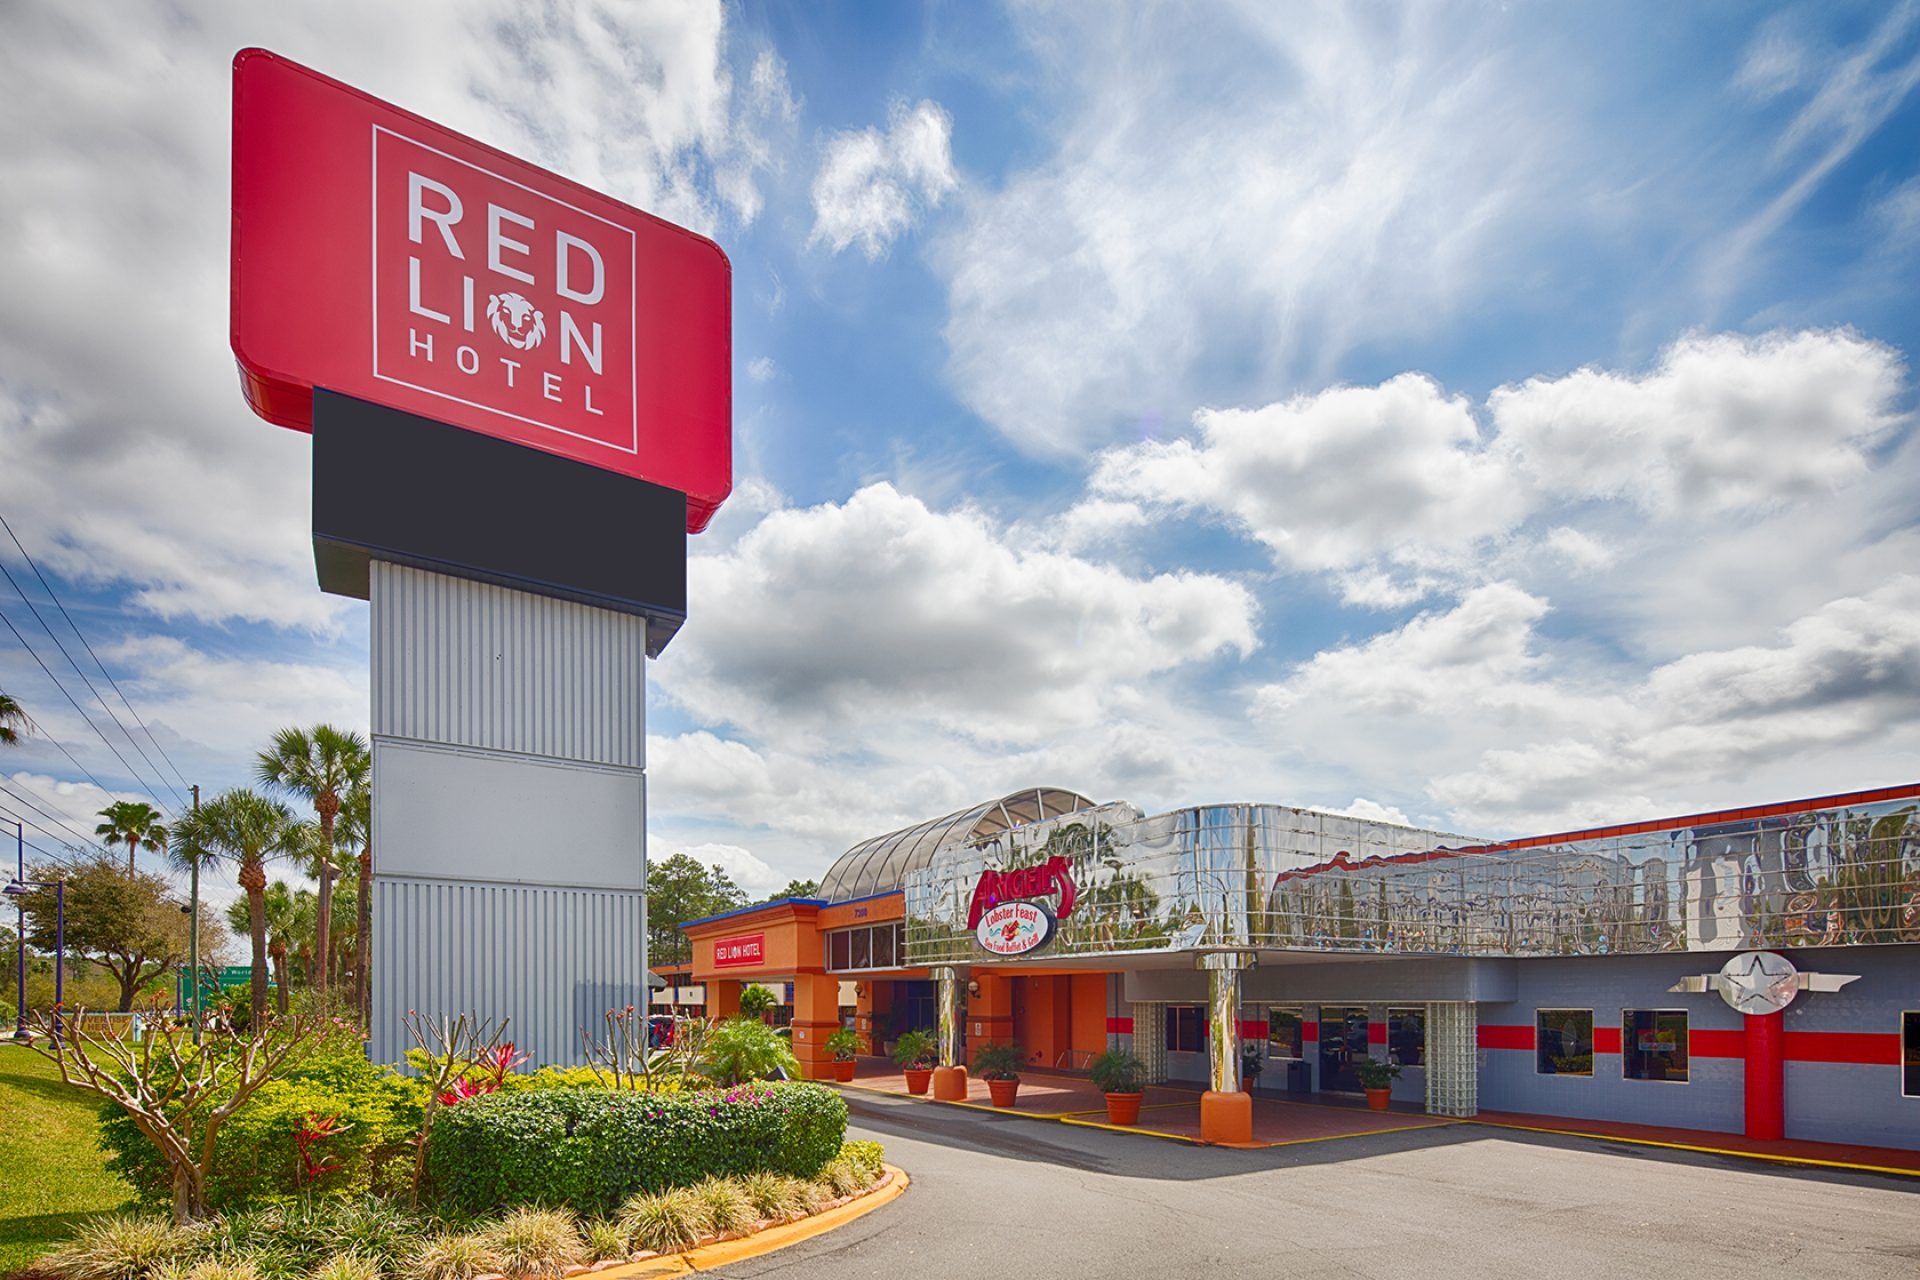 hotel near disney world red lion hotel orlando